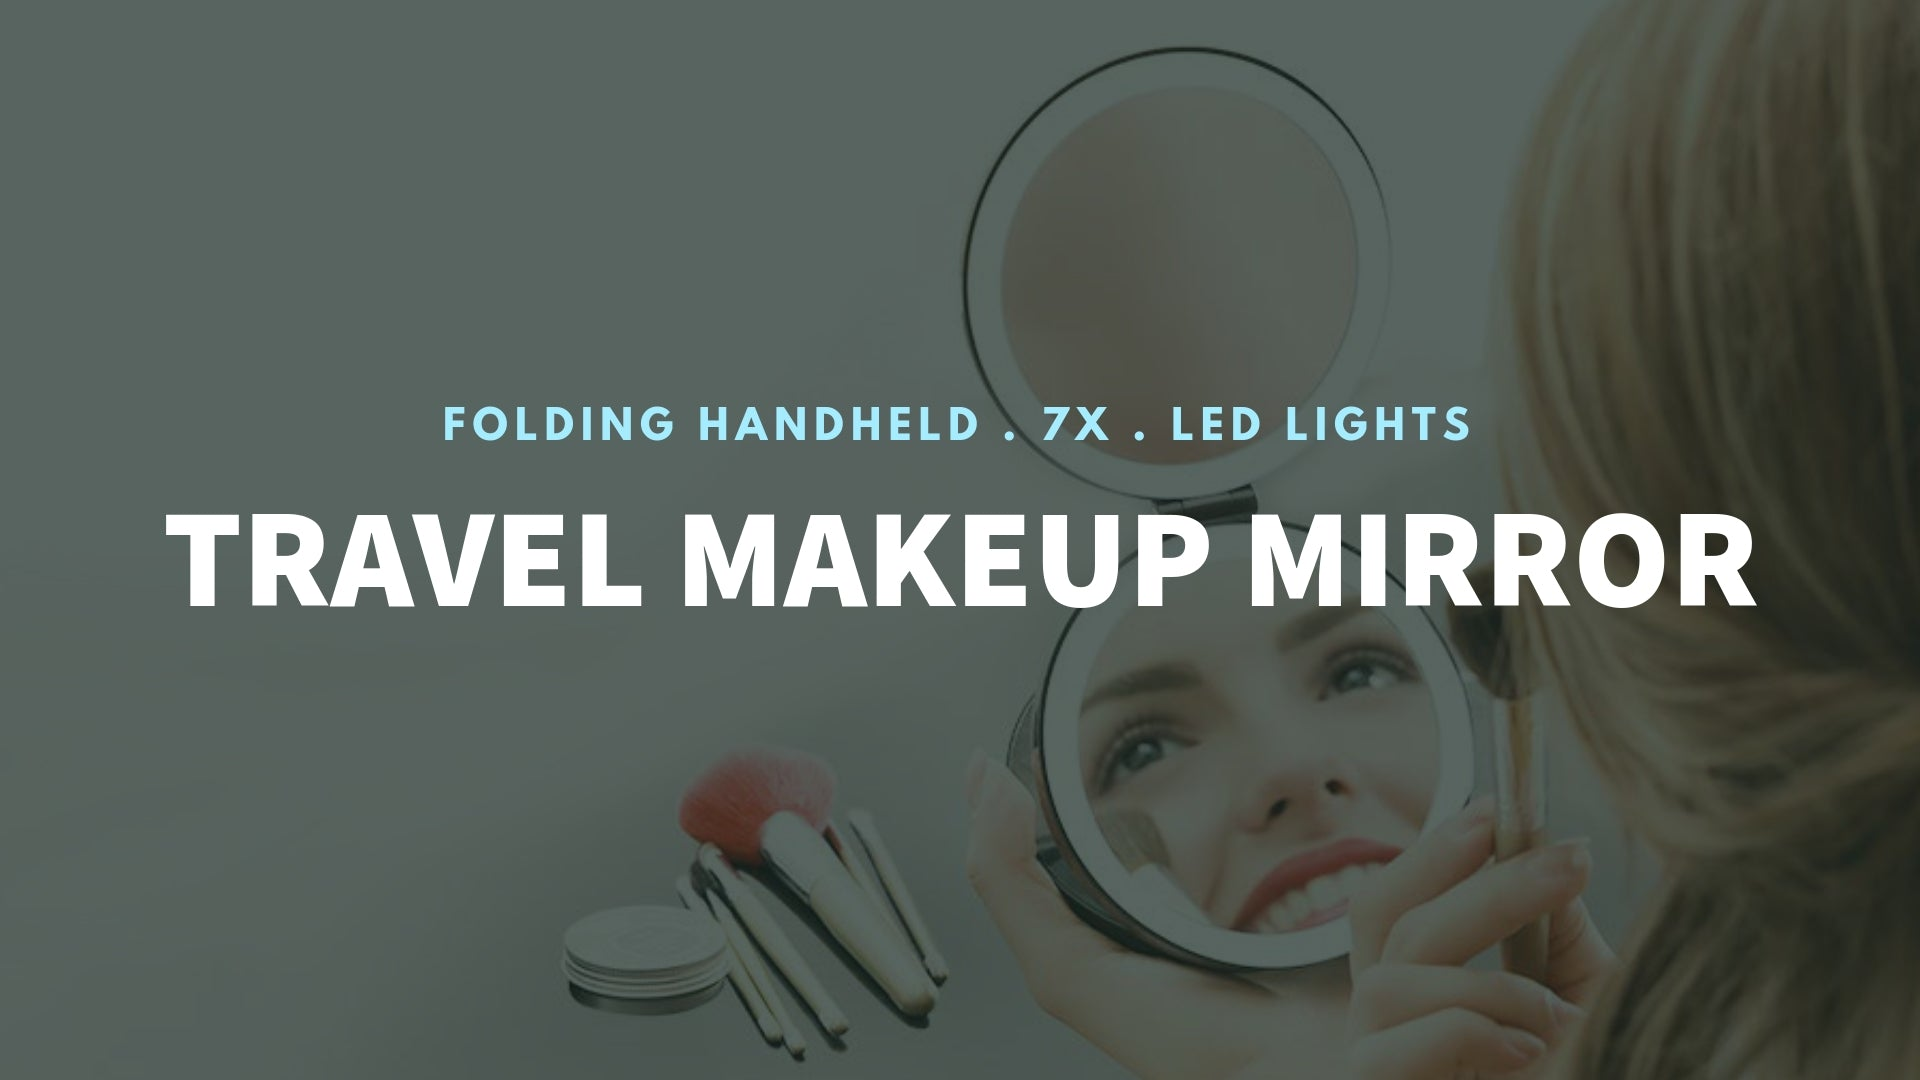 LED Lighted 3-fold Travel Compact Makeup Mirror 1X/7X Magnification magnifying mirror standing makeup magnifying bathroom s with lights trifold battery magnifying glass absolutely lush best hand zadro round makeup jerdon makeup reviews natural makeup estala hollywood vanity fancii travel makeup gala 10x magnifying makeup bestmakeup makeup with lights best ratedmakeup anjou makeup kensie vanity vanity with lights tri fold vanity wall mounted makeup banner - GadgetiCloud